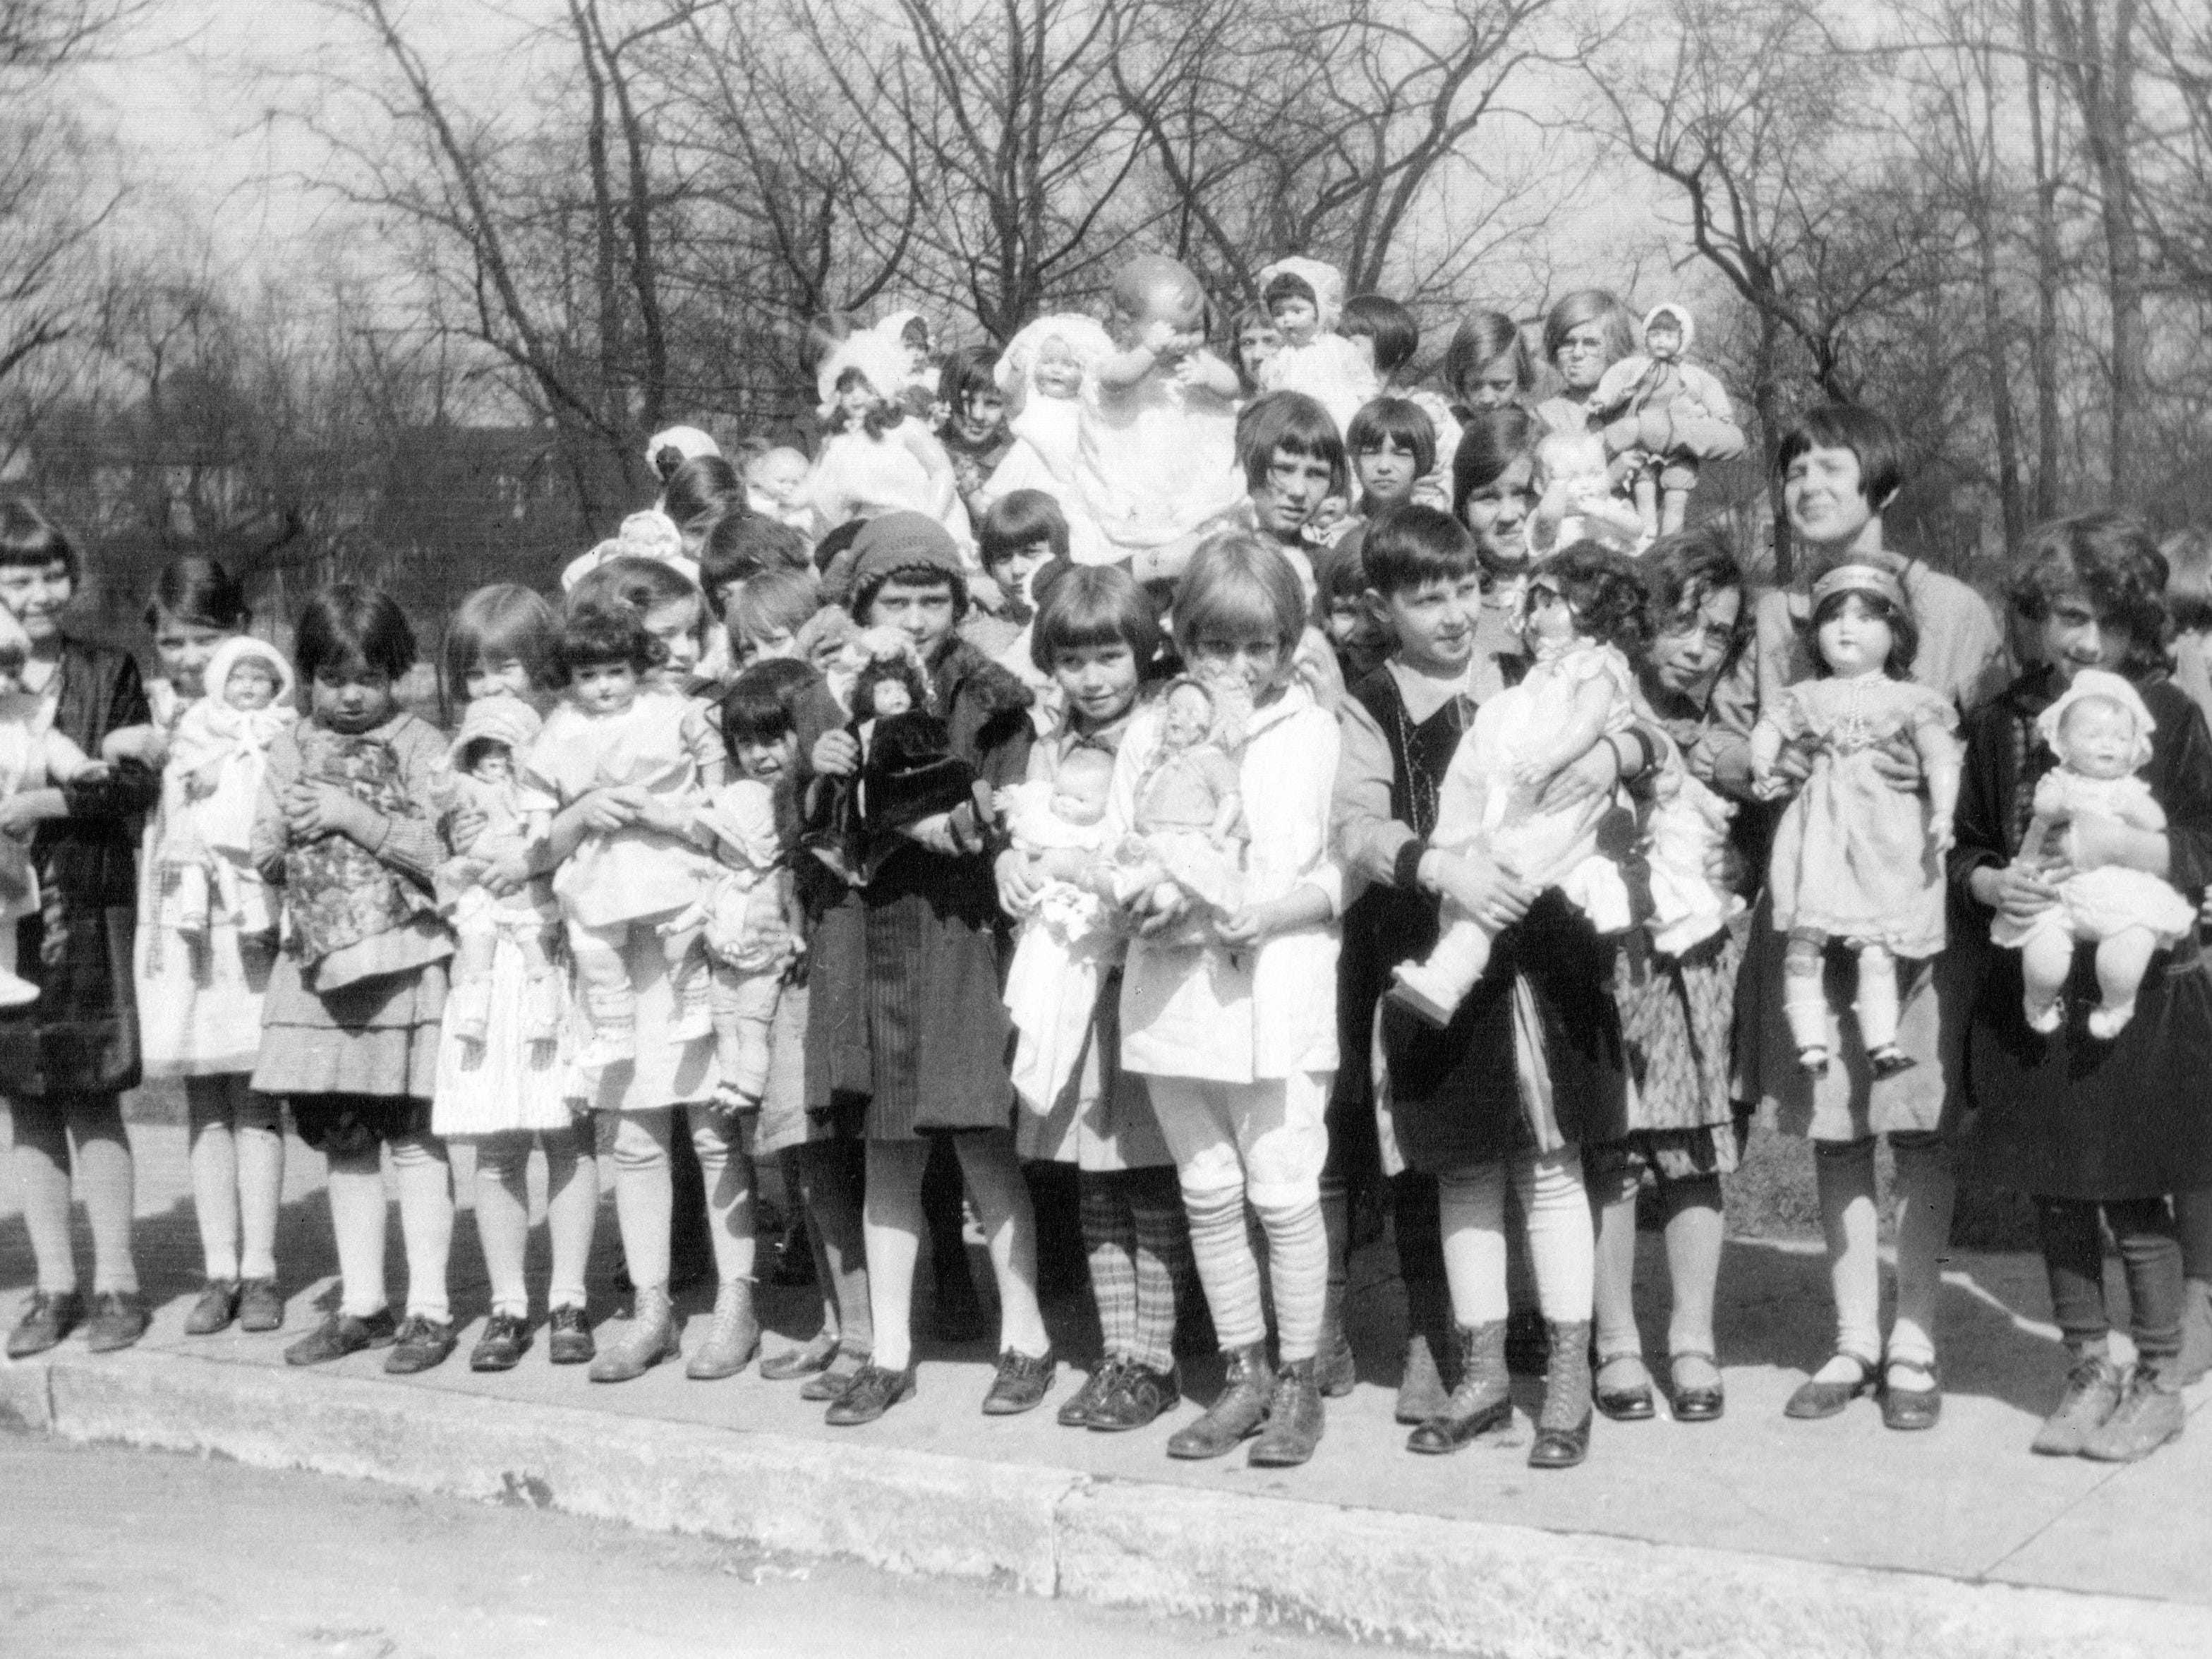 Dolls story hour at Spades Park Branch library April 1928